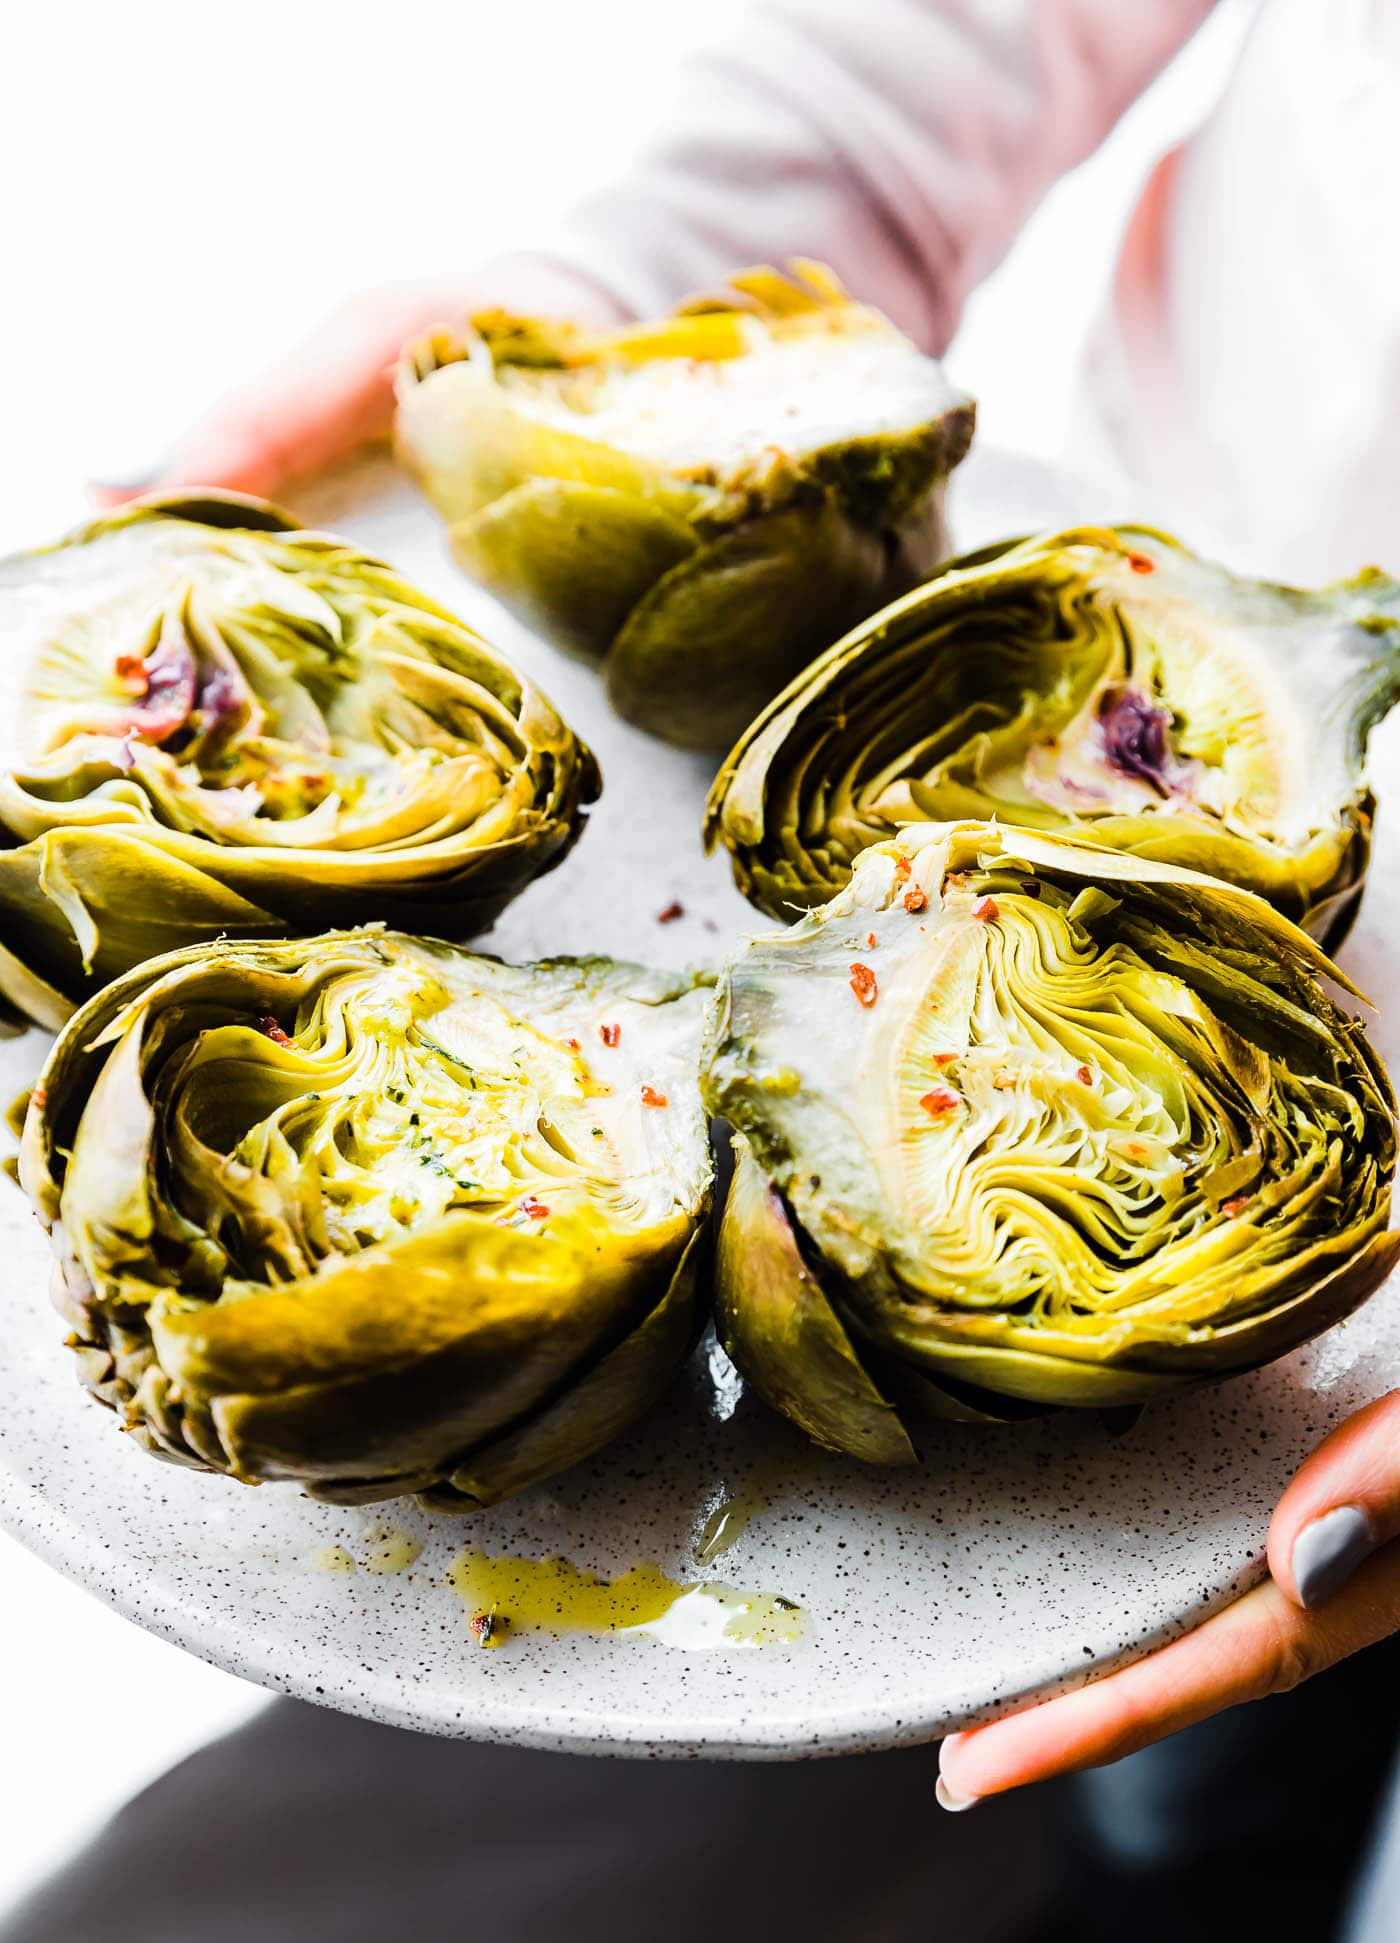 Plate of Steamed Artichokes with Mediterranean Aioli